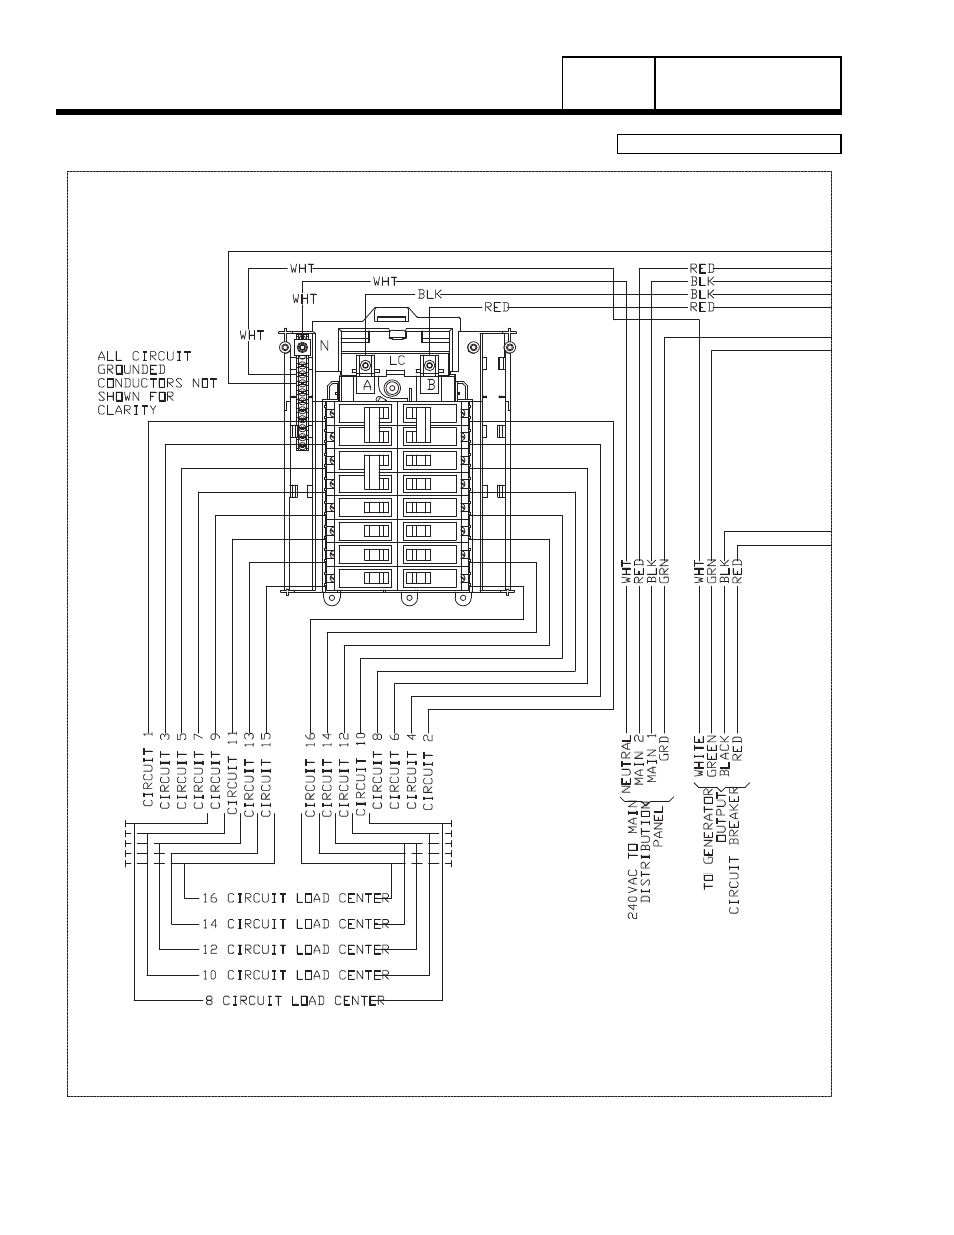 8 Kw Generac Wiring Diagram - Wiring Diagram •